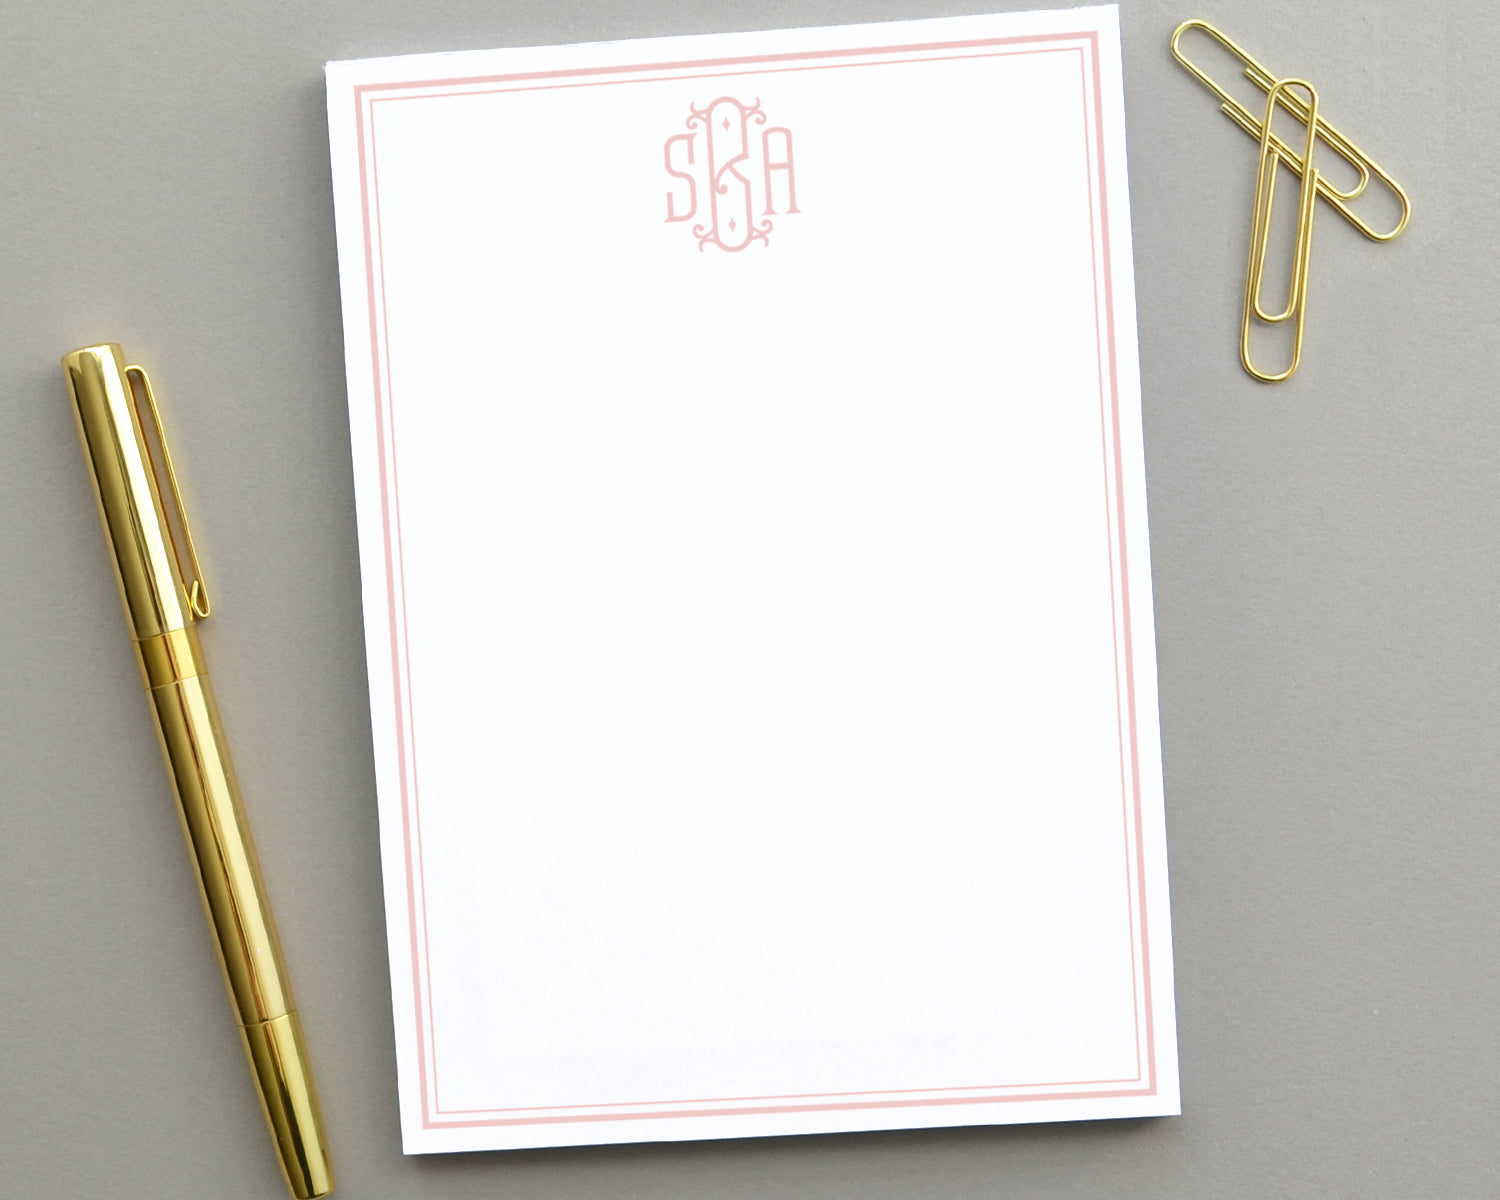 Monogram Notepad, Customized Notepad Personalized Gifts